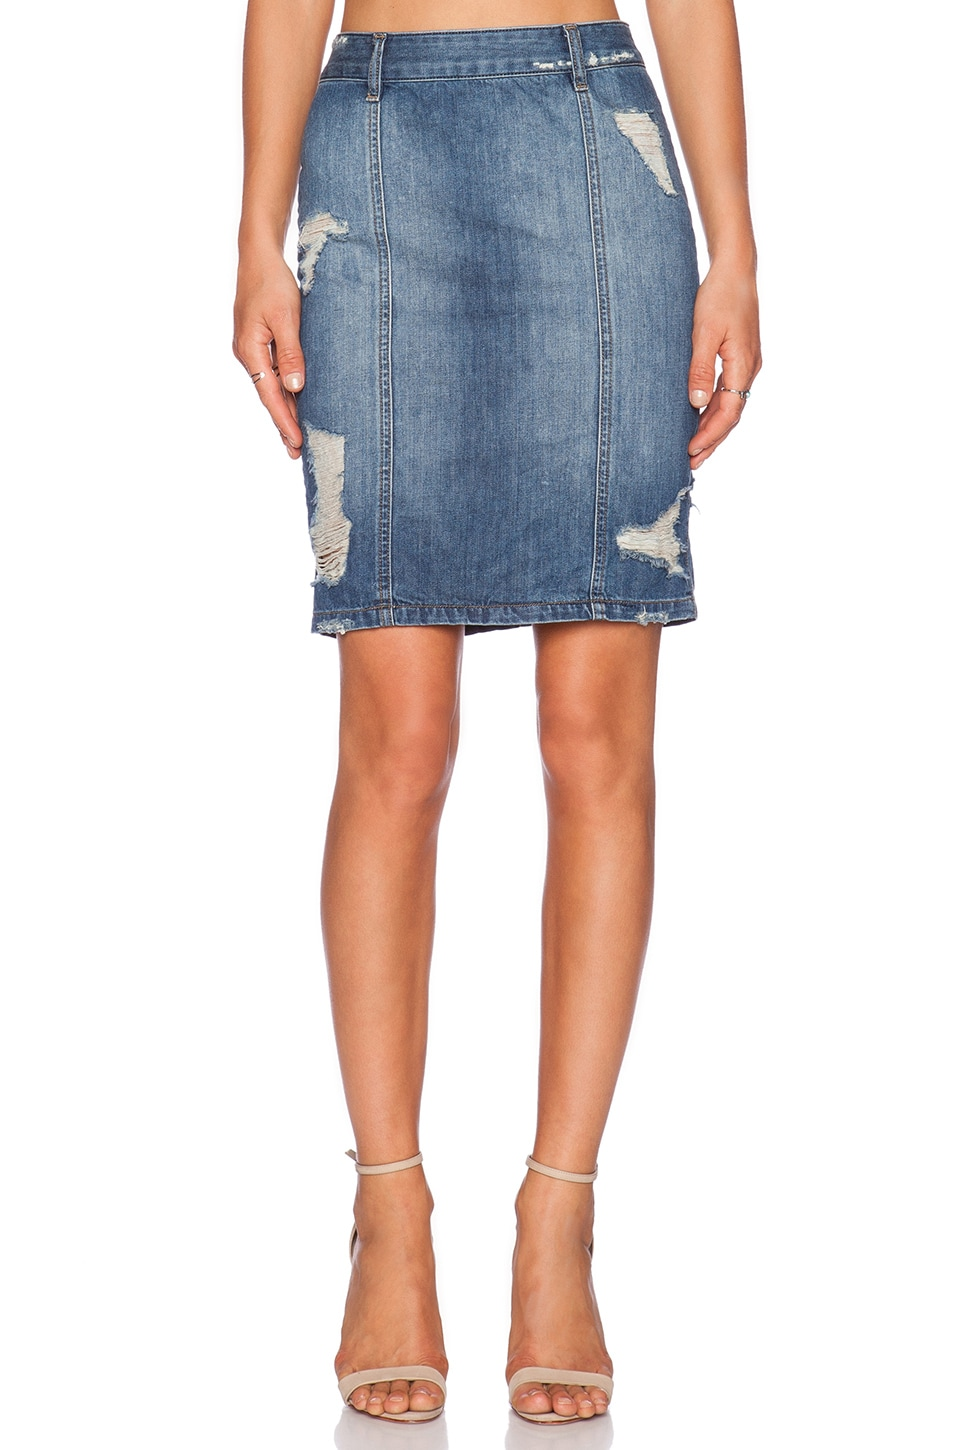 DL1961 Cleo Skirt in Calamity